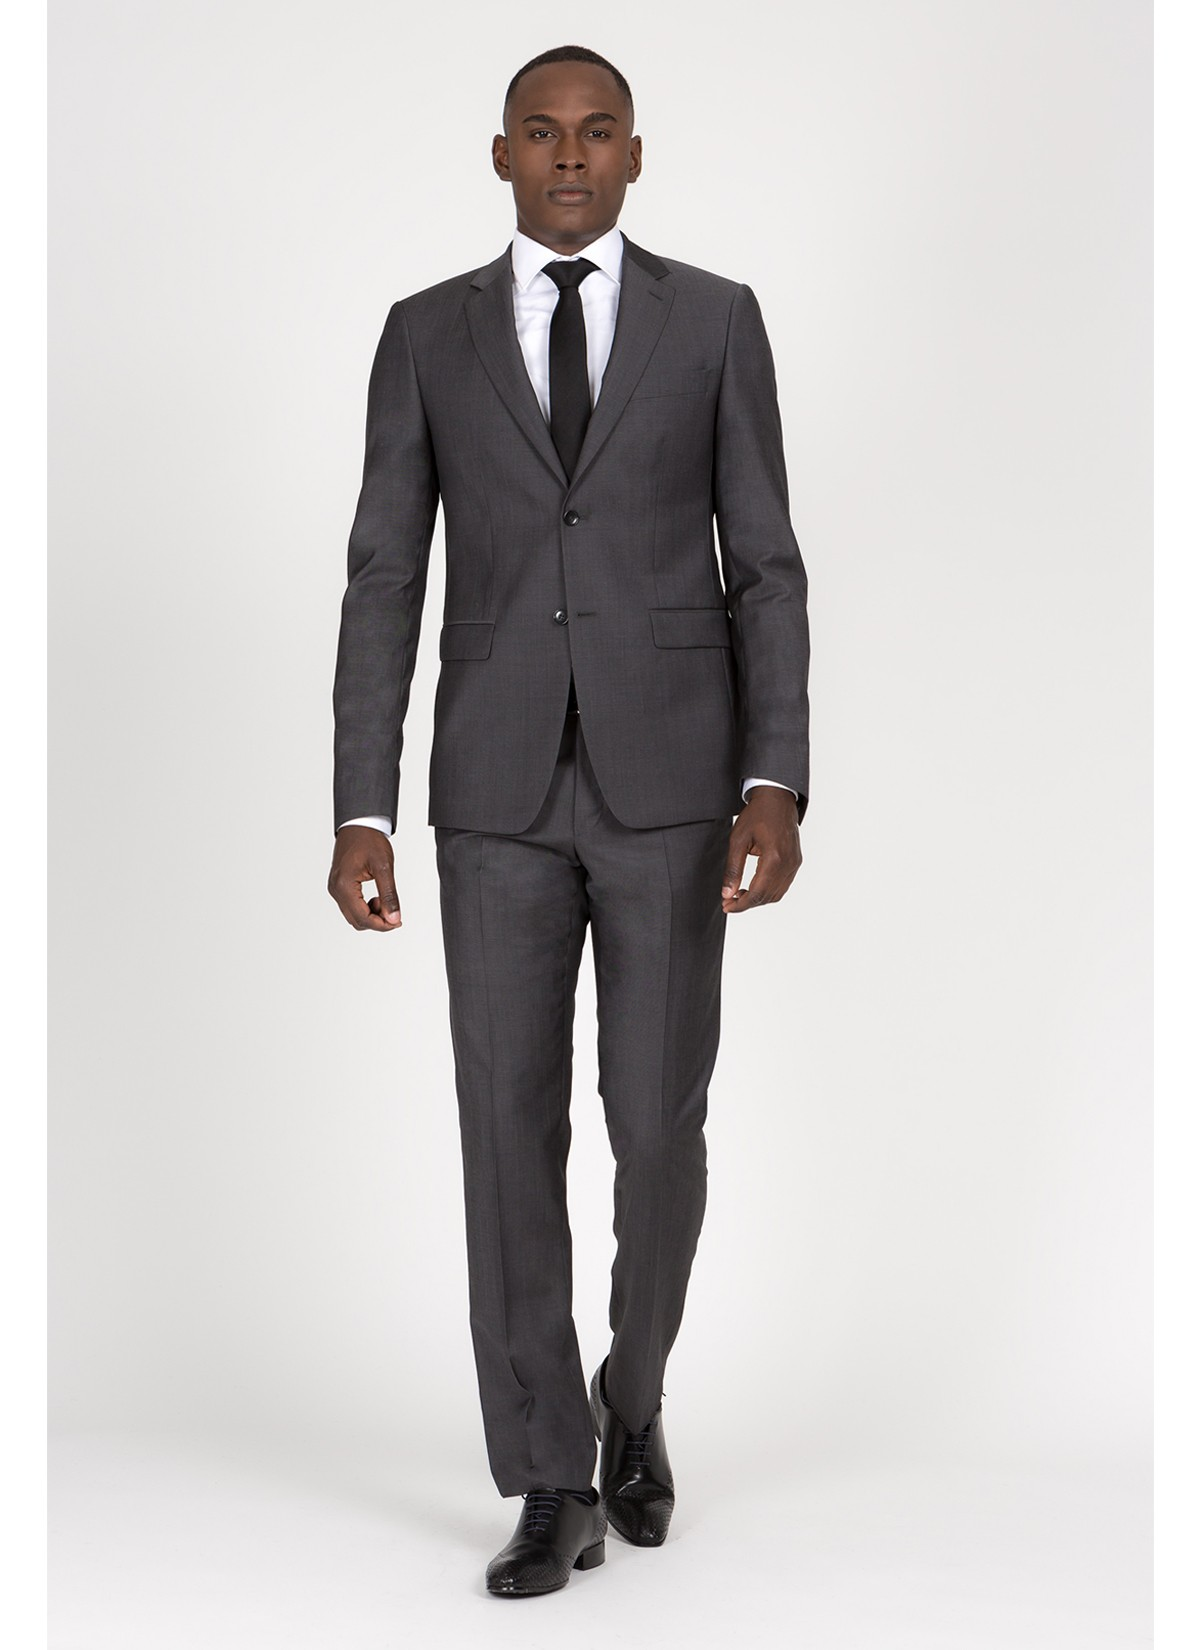 Regular fit suit T.G di Fabio Dark grey - 61U60/1/112